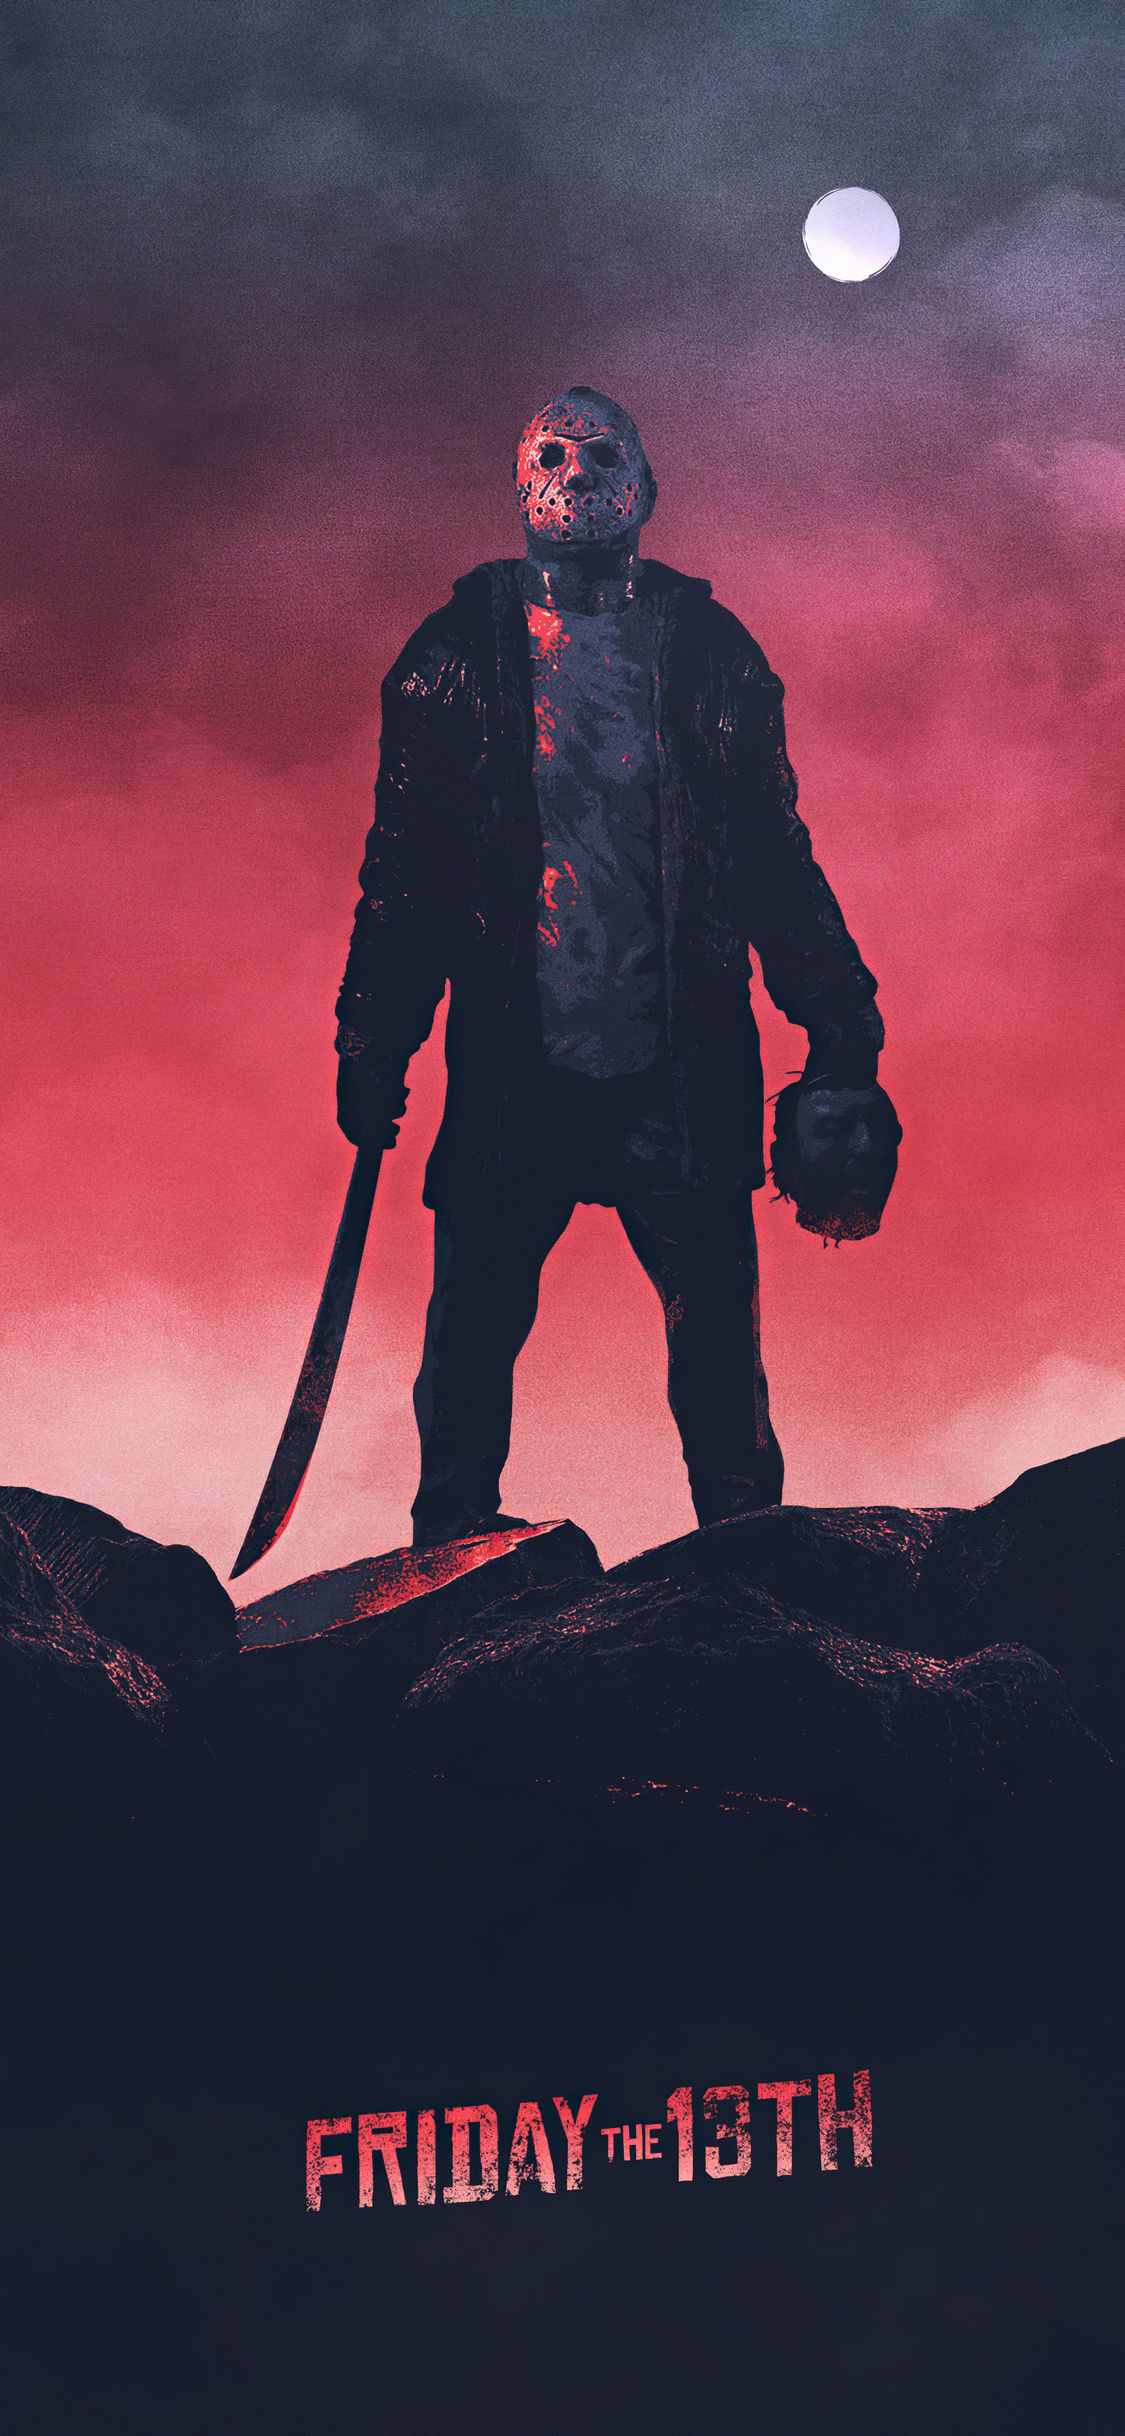 1125x2436 Friday The 13th Poster Iphone XS,Iphone 10 ...